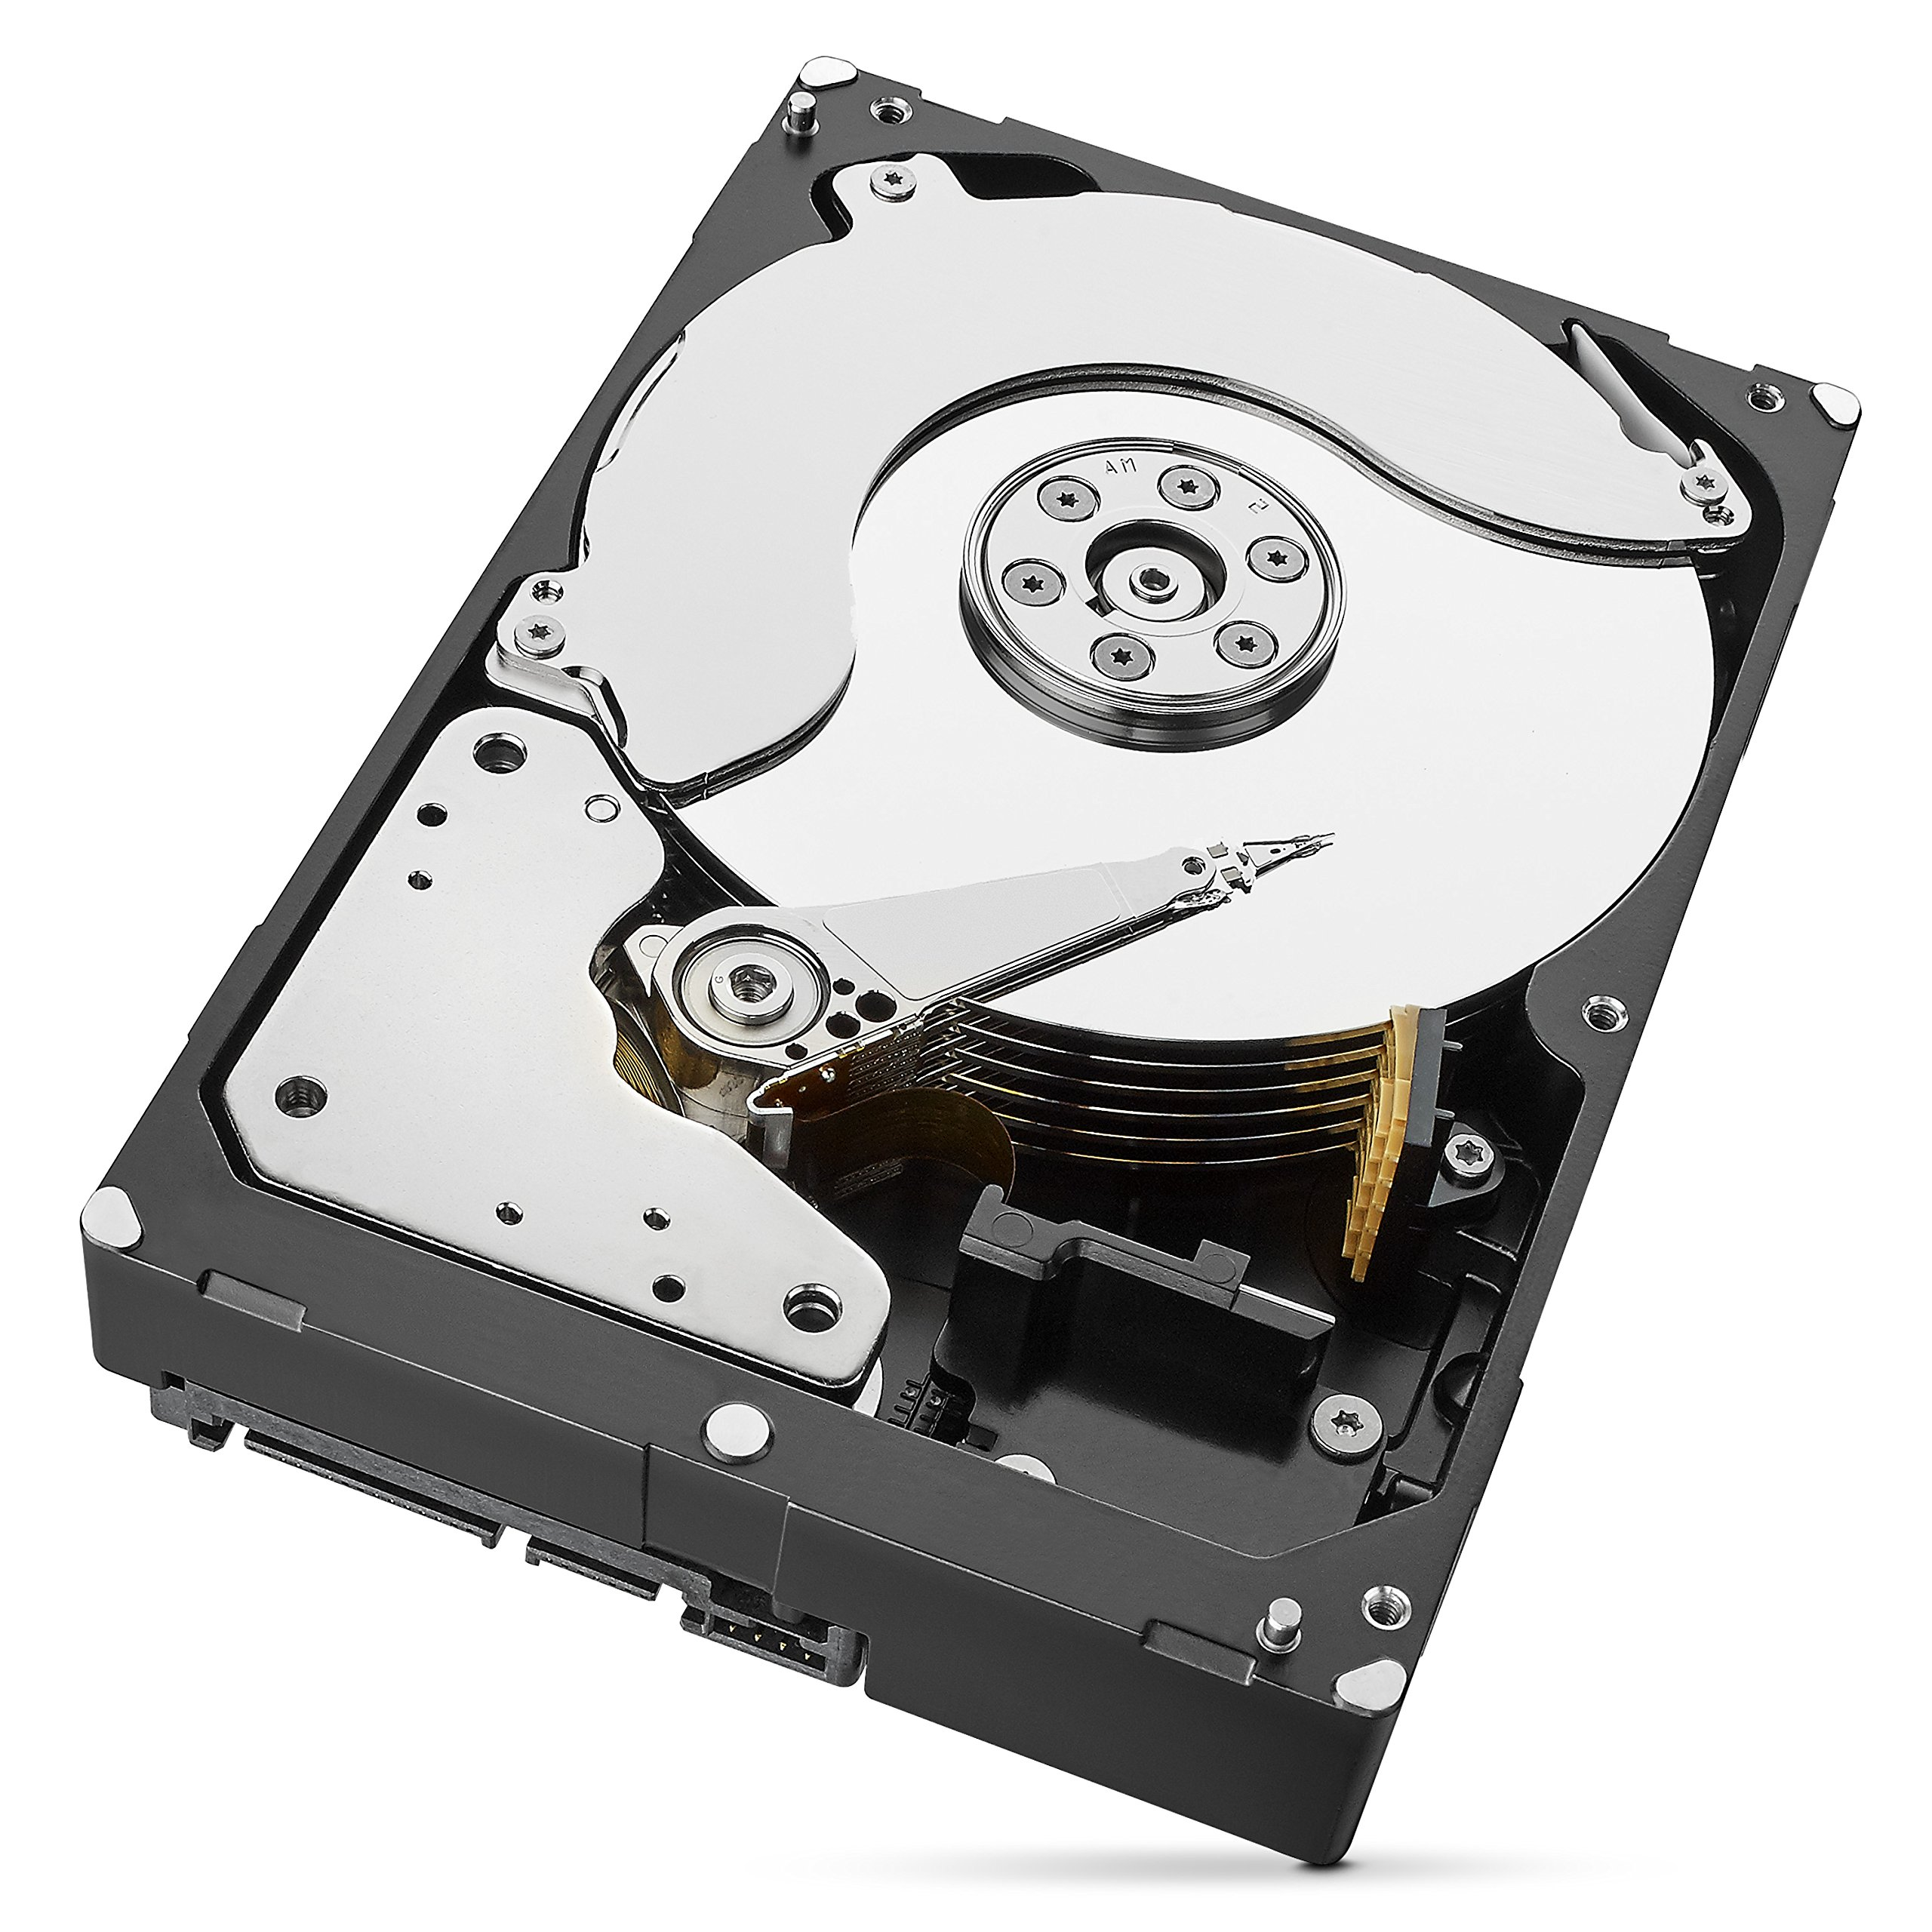 Seagate 6TB IronWolf NAS SATA 6Gb/s NCQ 128MB Cache 3.5-Inch Internal Hard Drive (ST6000VN0041) by Seagate (Image #2)